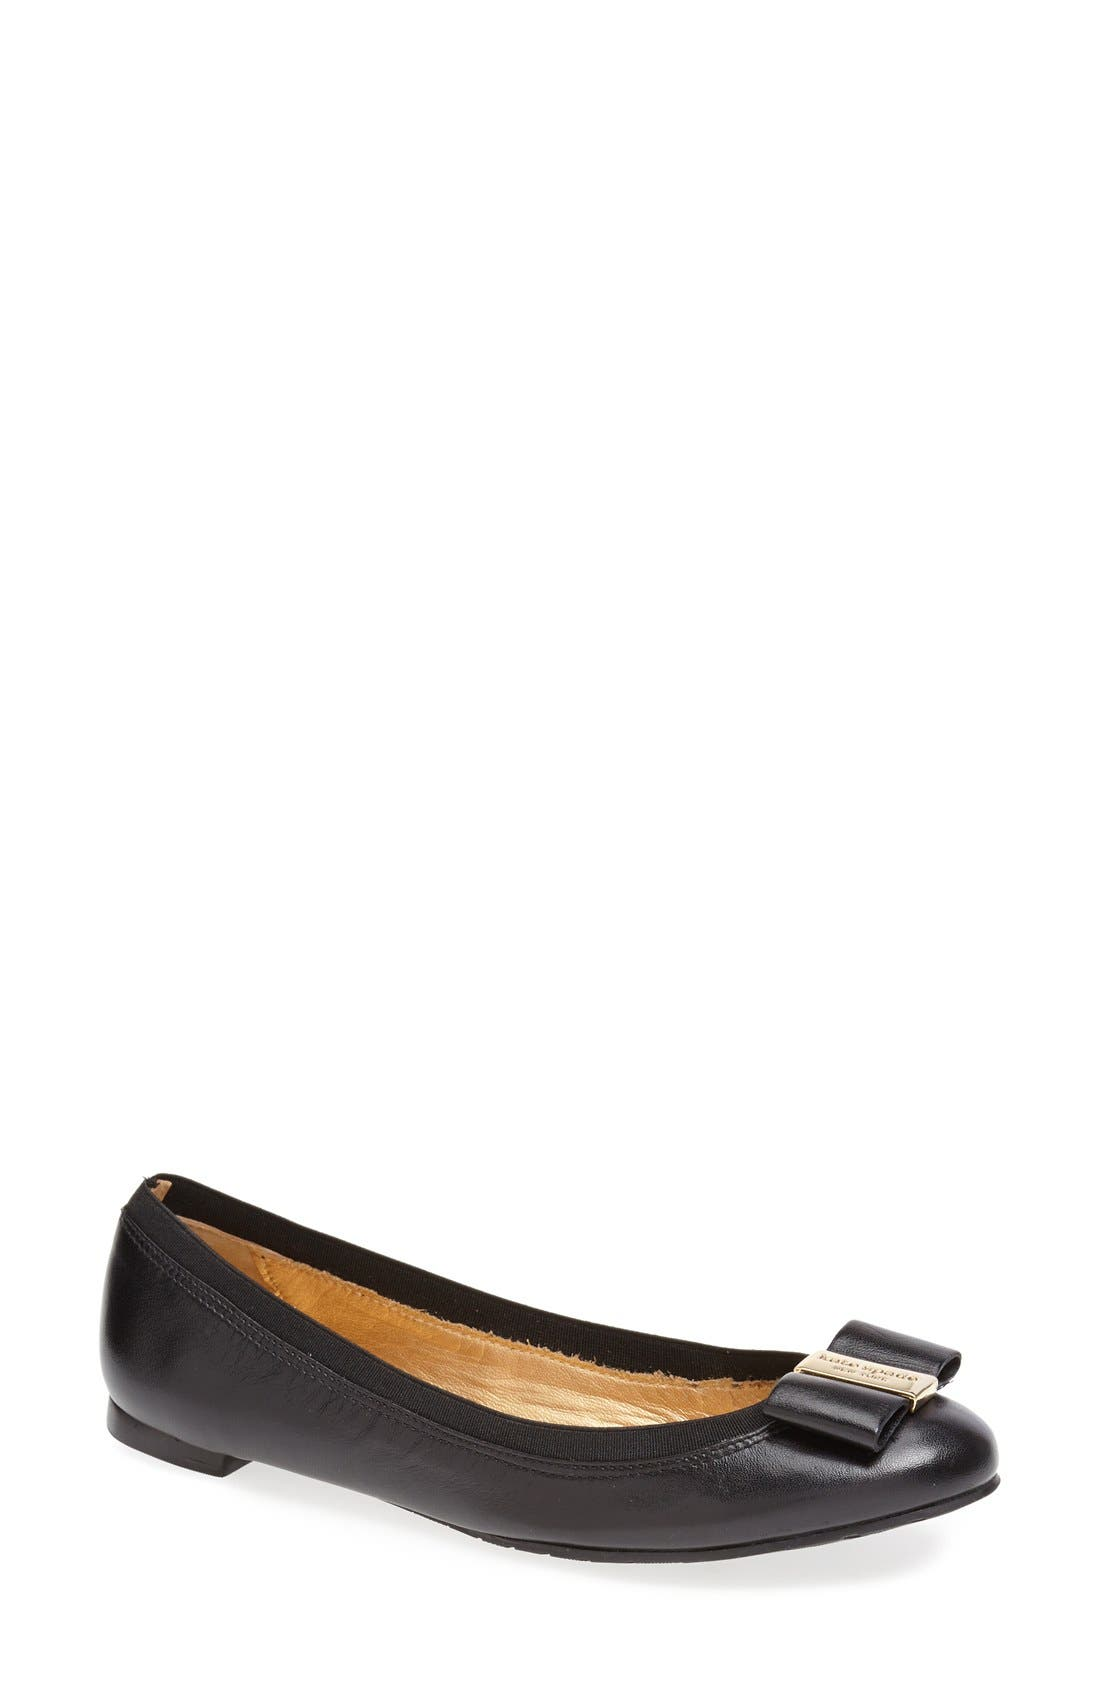 Alternate Image 1 Selected - kate spade new york 'tock' flat